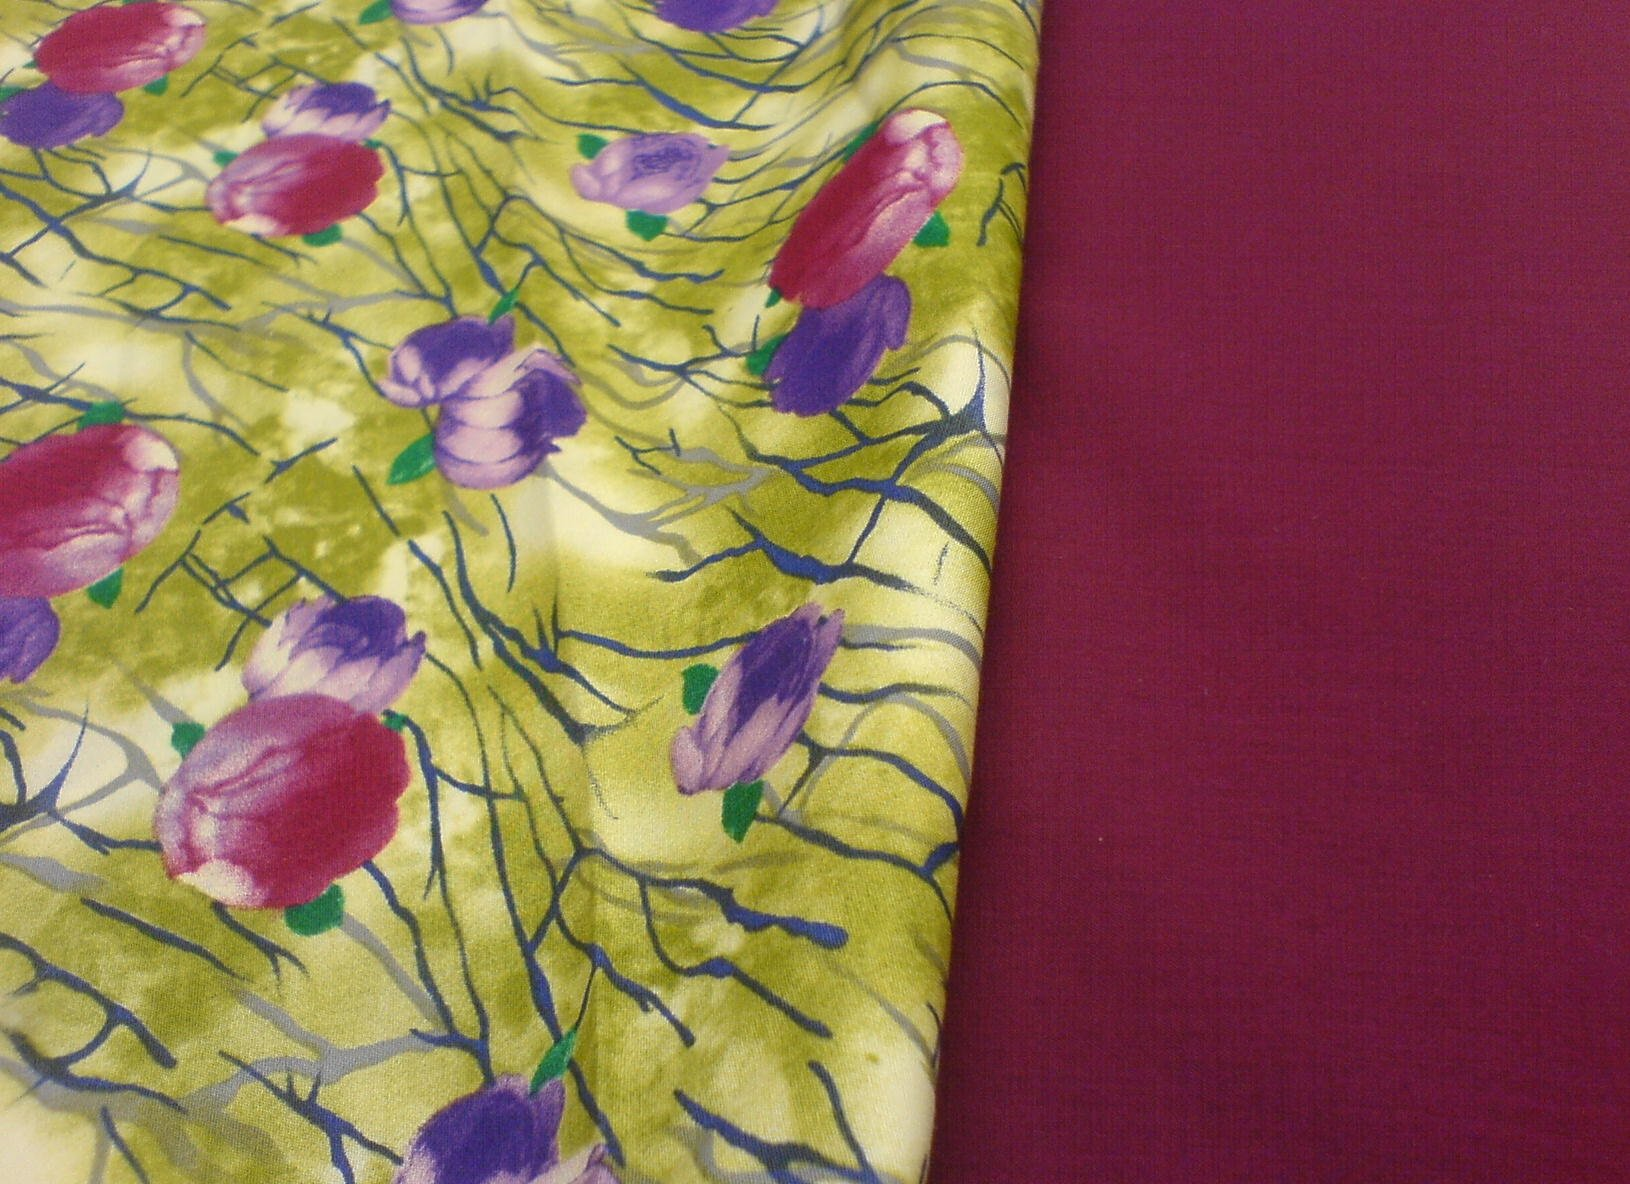 A floral patterned material in The Sewing Shop